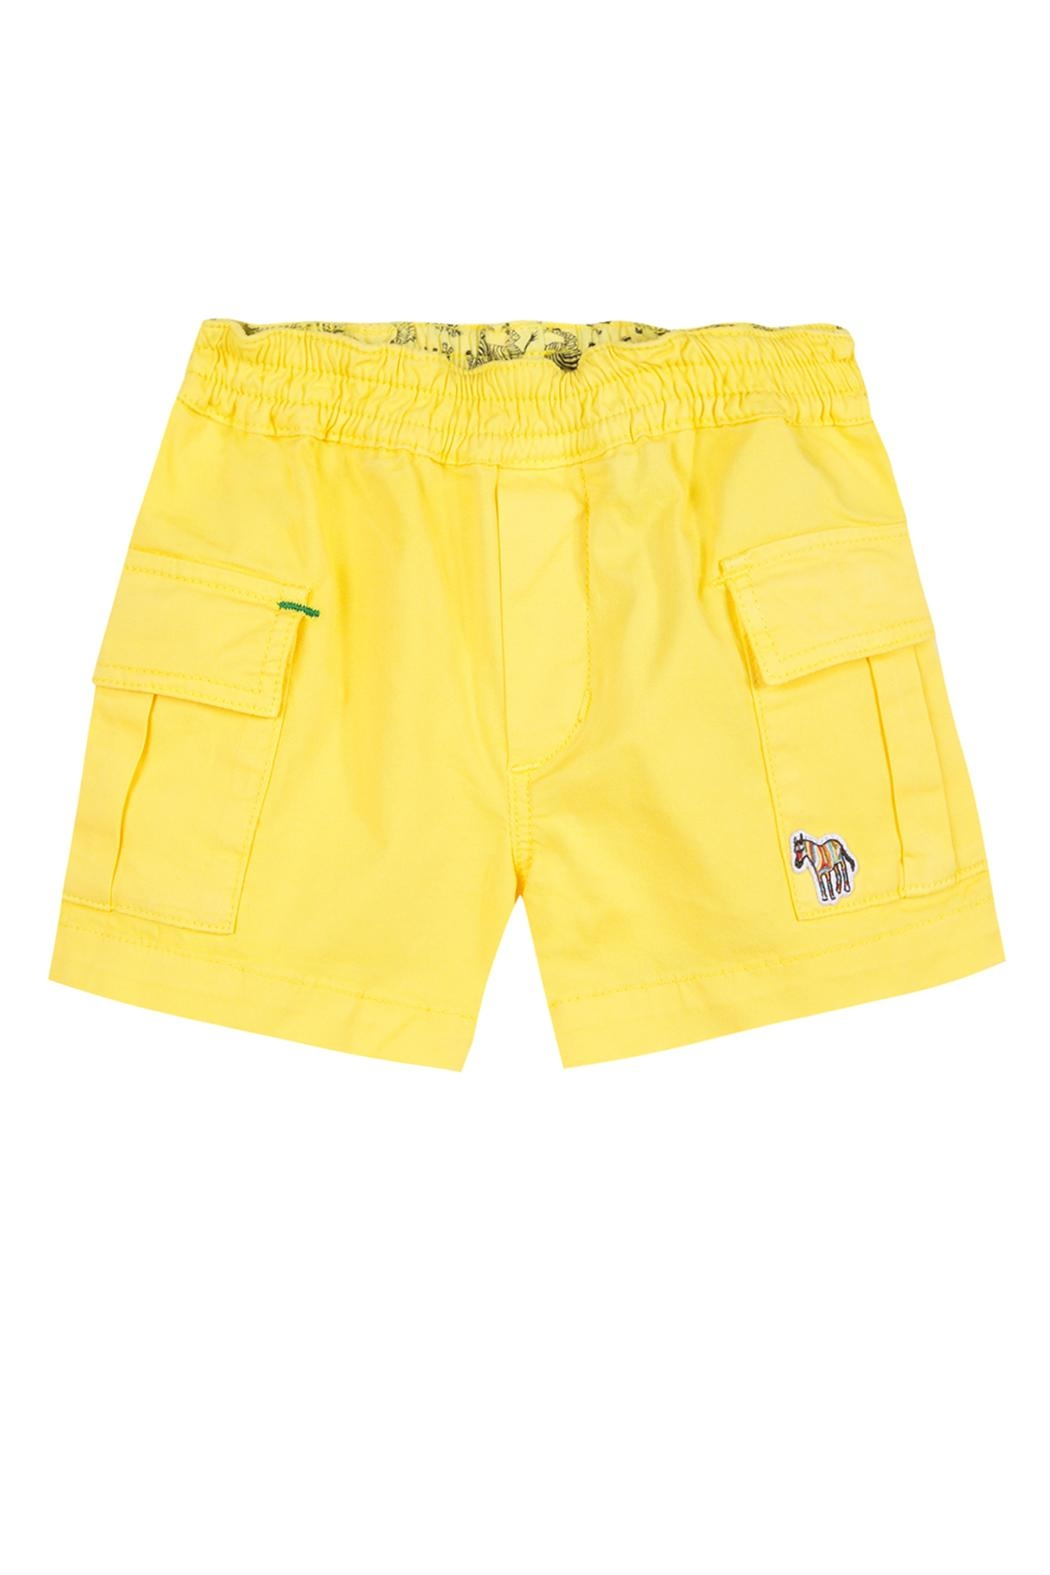 Paul Smith Junior Primrose-Yellow 'Toby' Shorts - Front Cropped Image